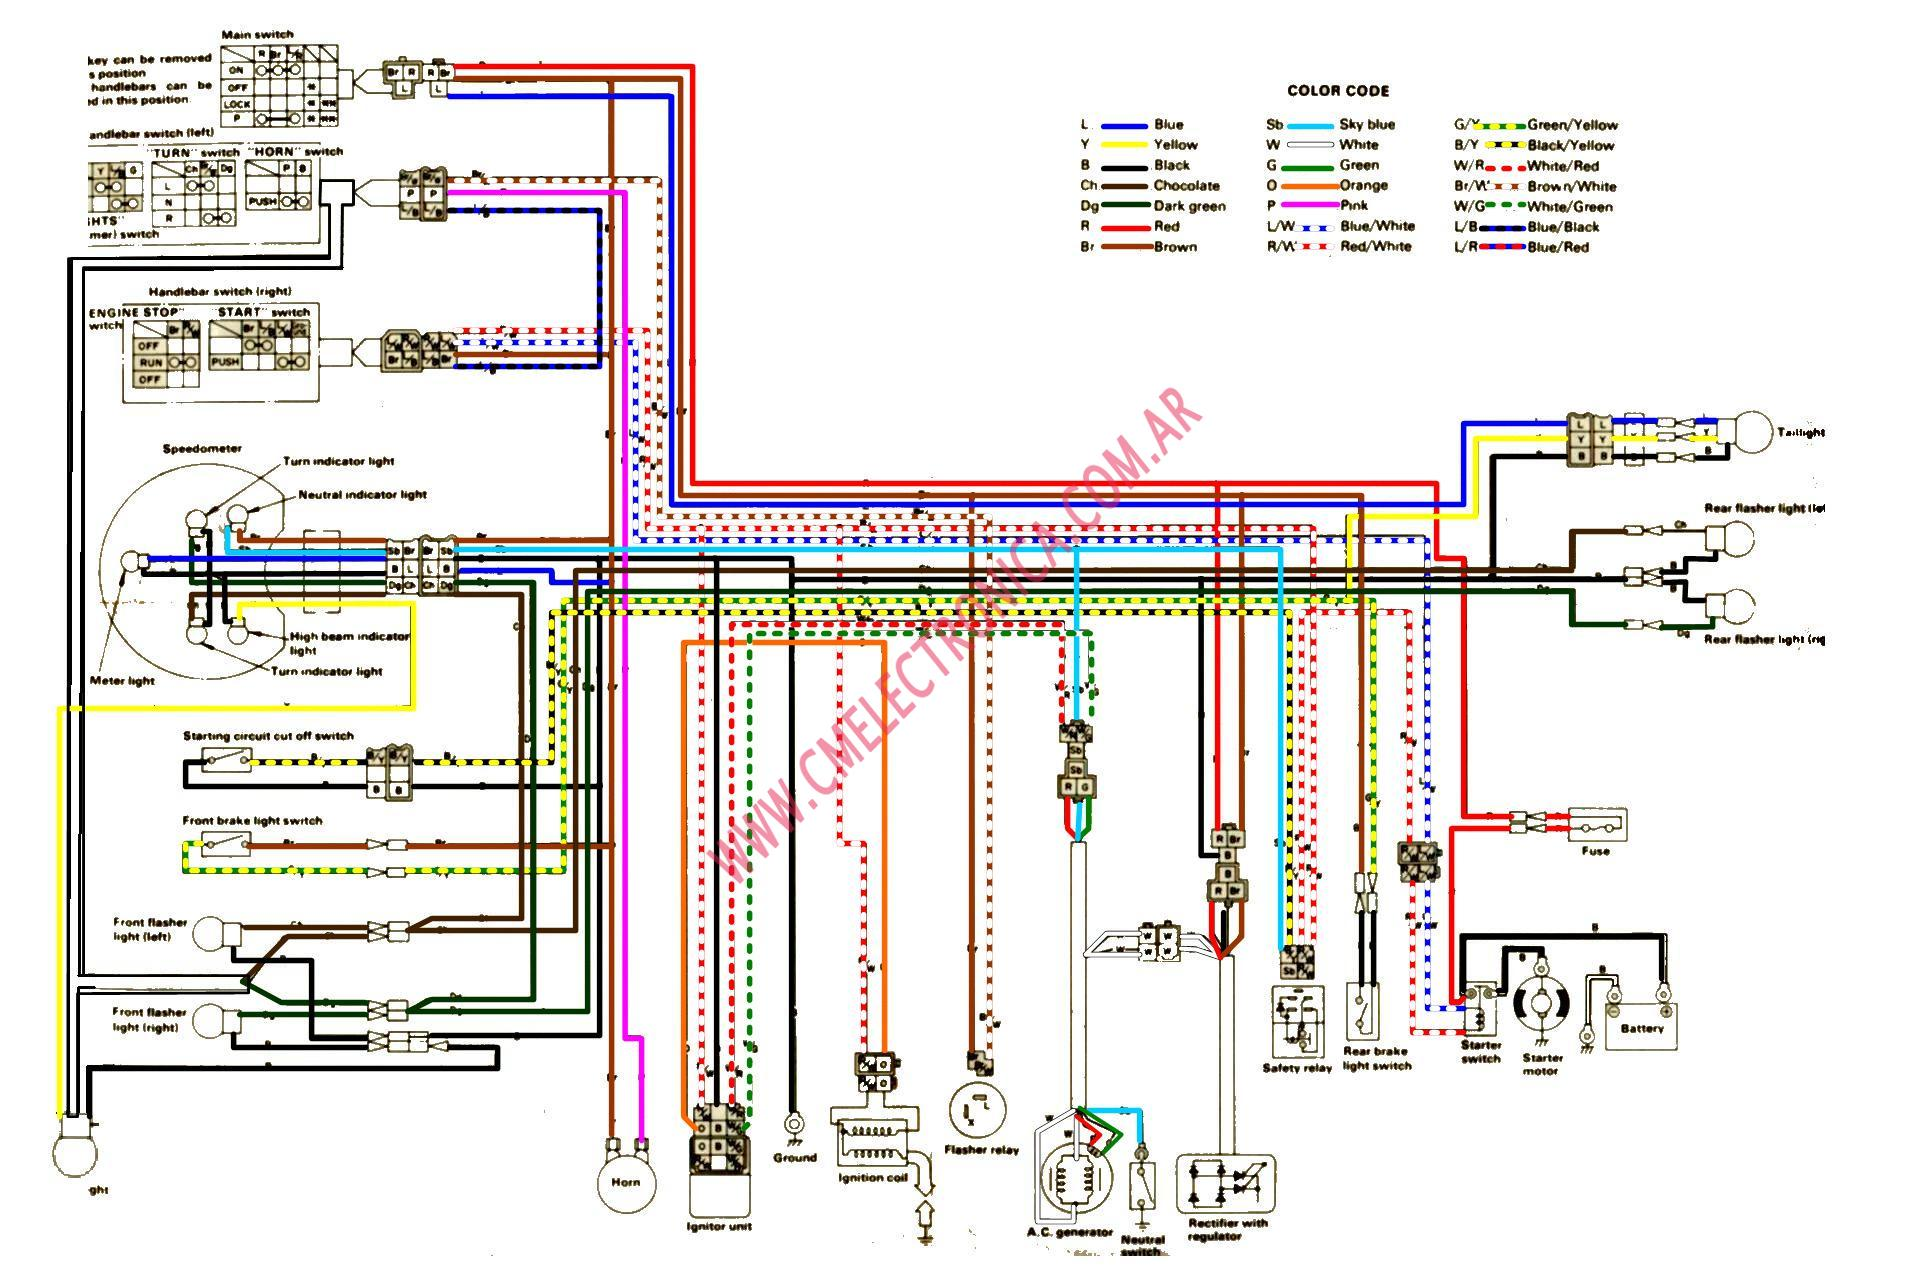 hight resolution of sr500 wiring diagram diagram data schemawiring diagram yamaha sr400 blog wiring diagram 1978 sr500 wiring diagram